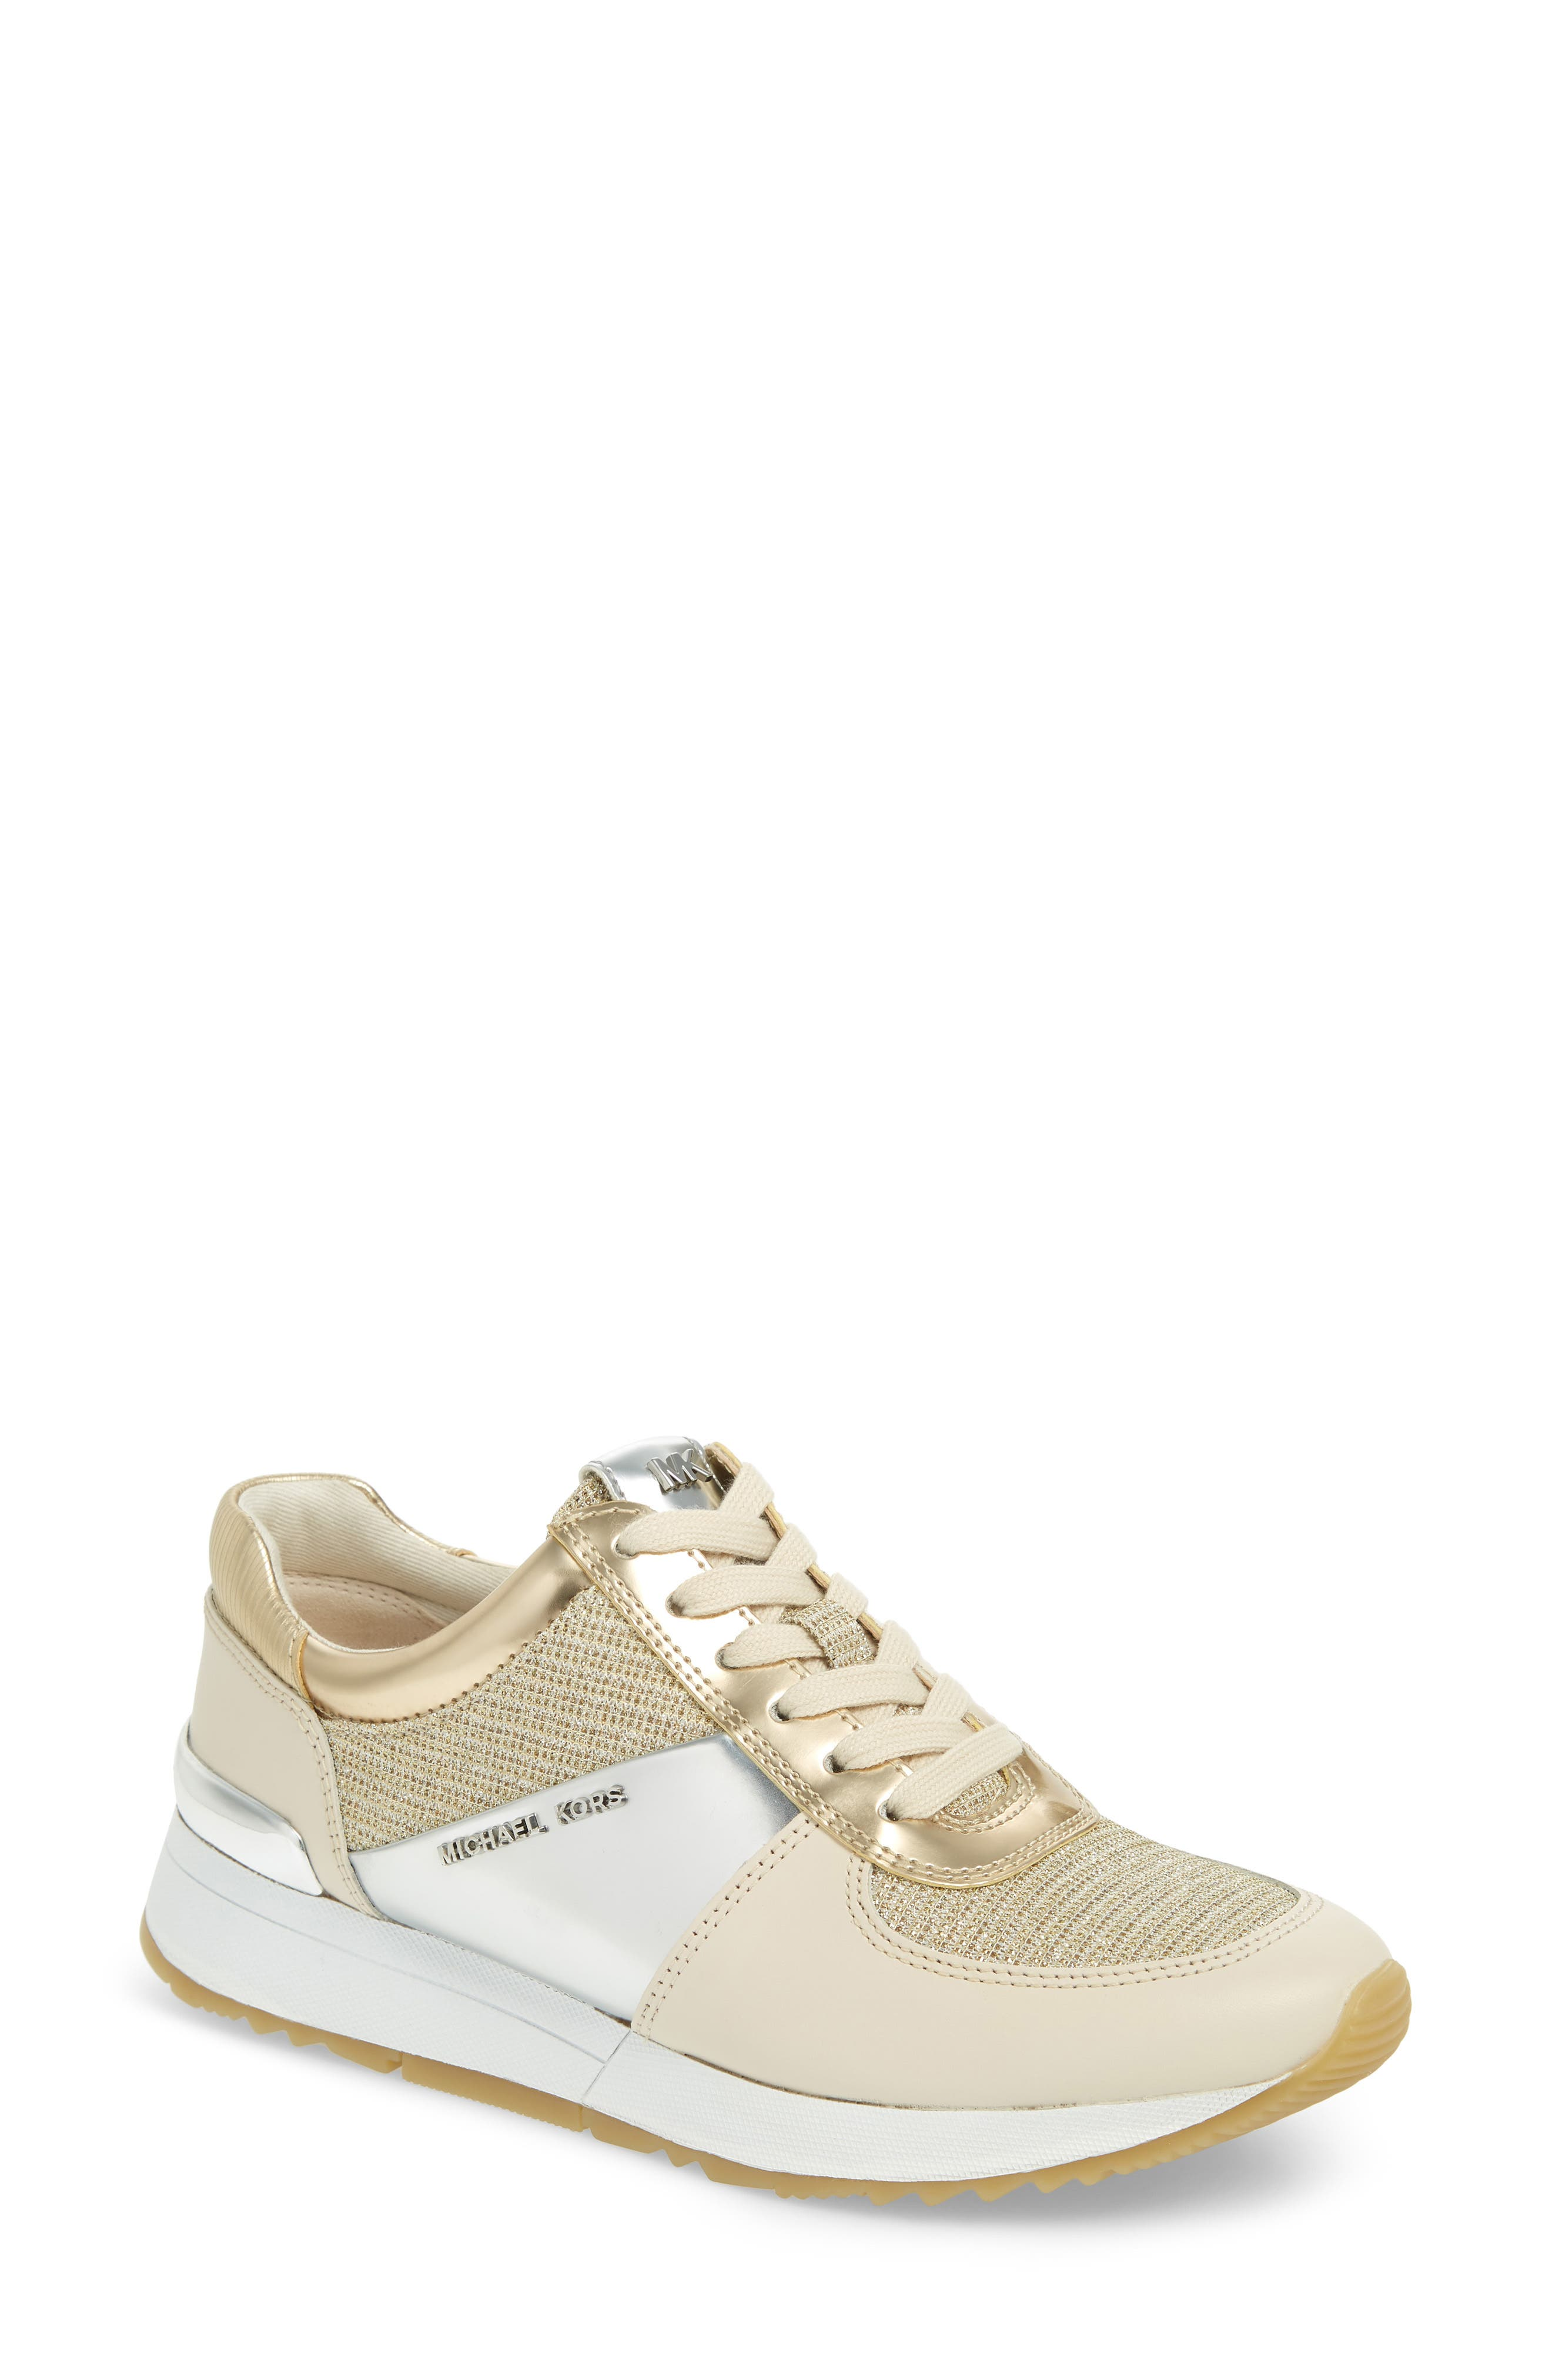 Allie Metallic Mix Trainers in Gold/ White Multi